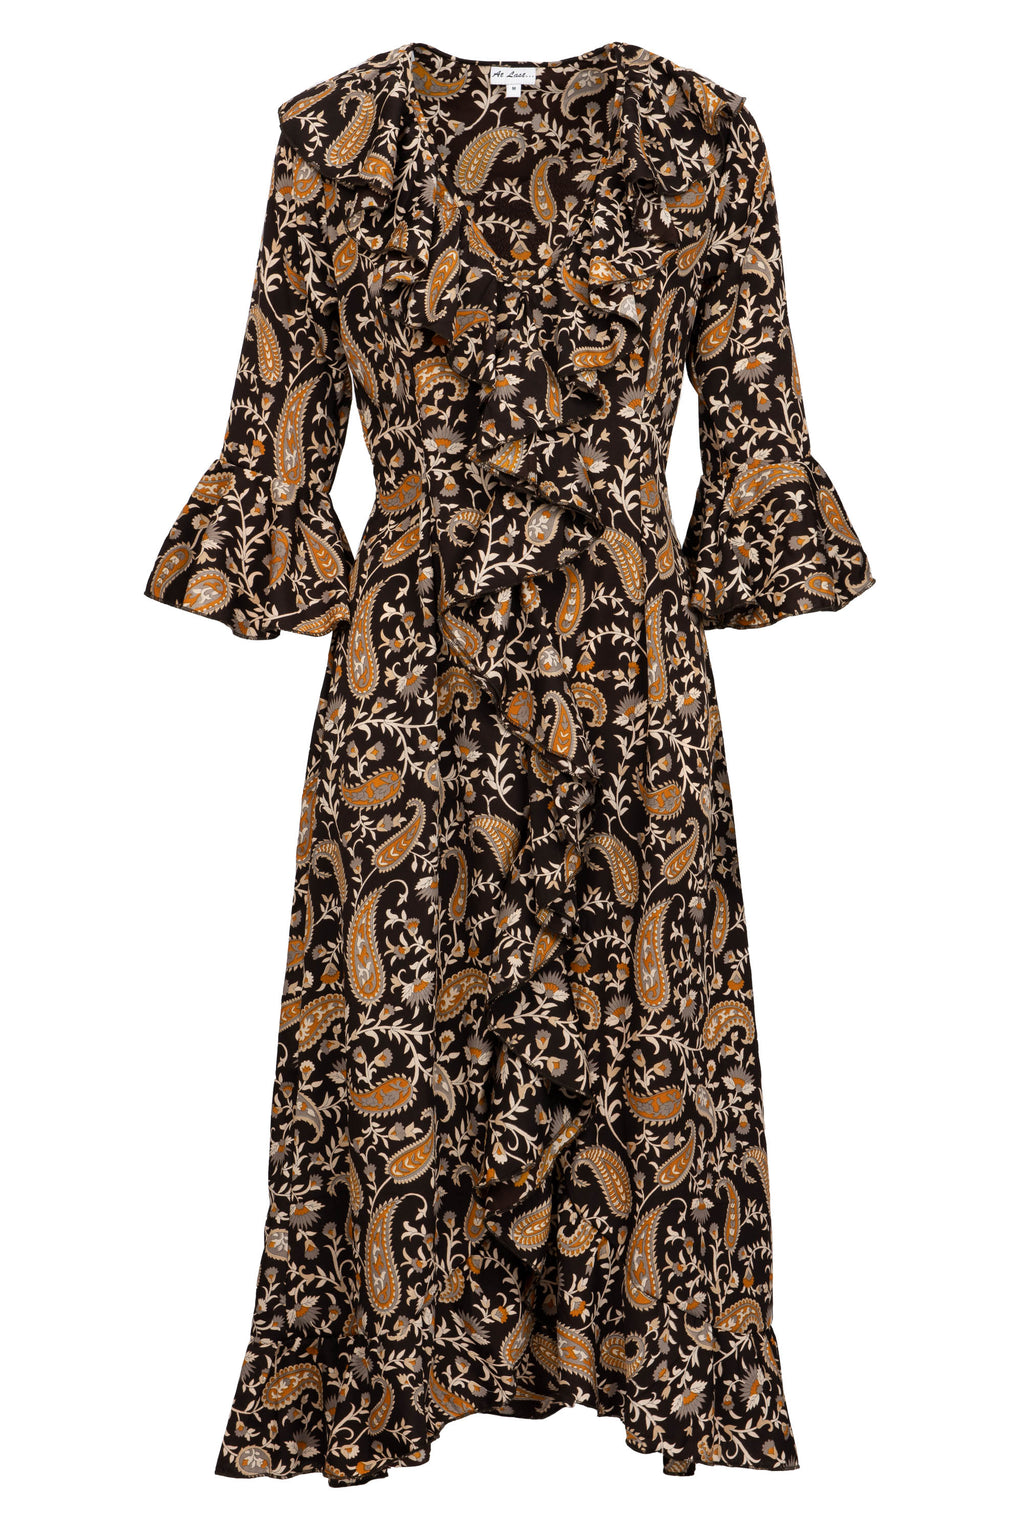 Felicity Dress - Black Paisley